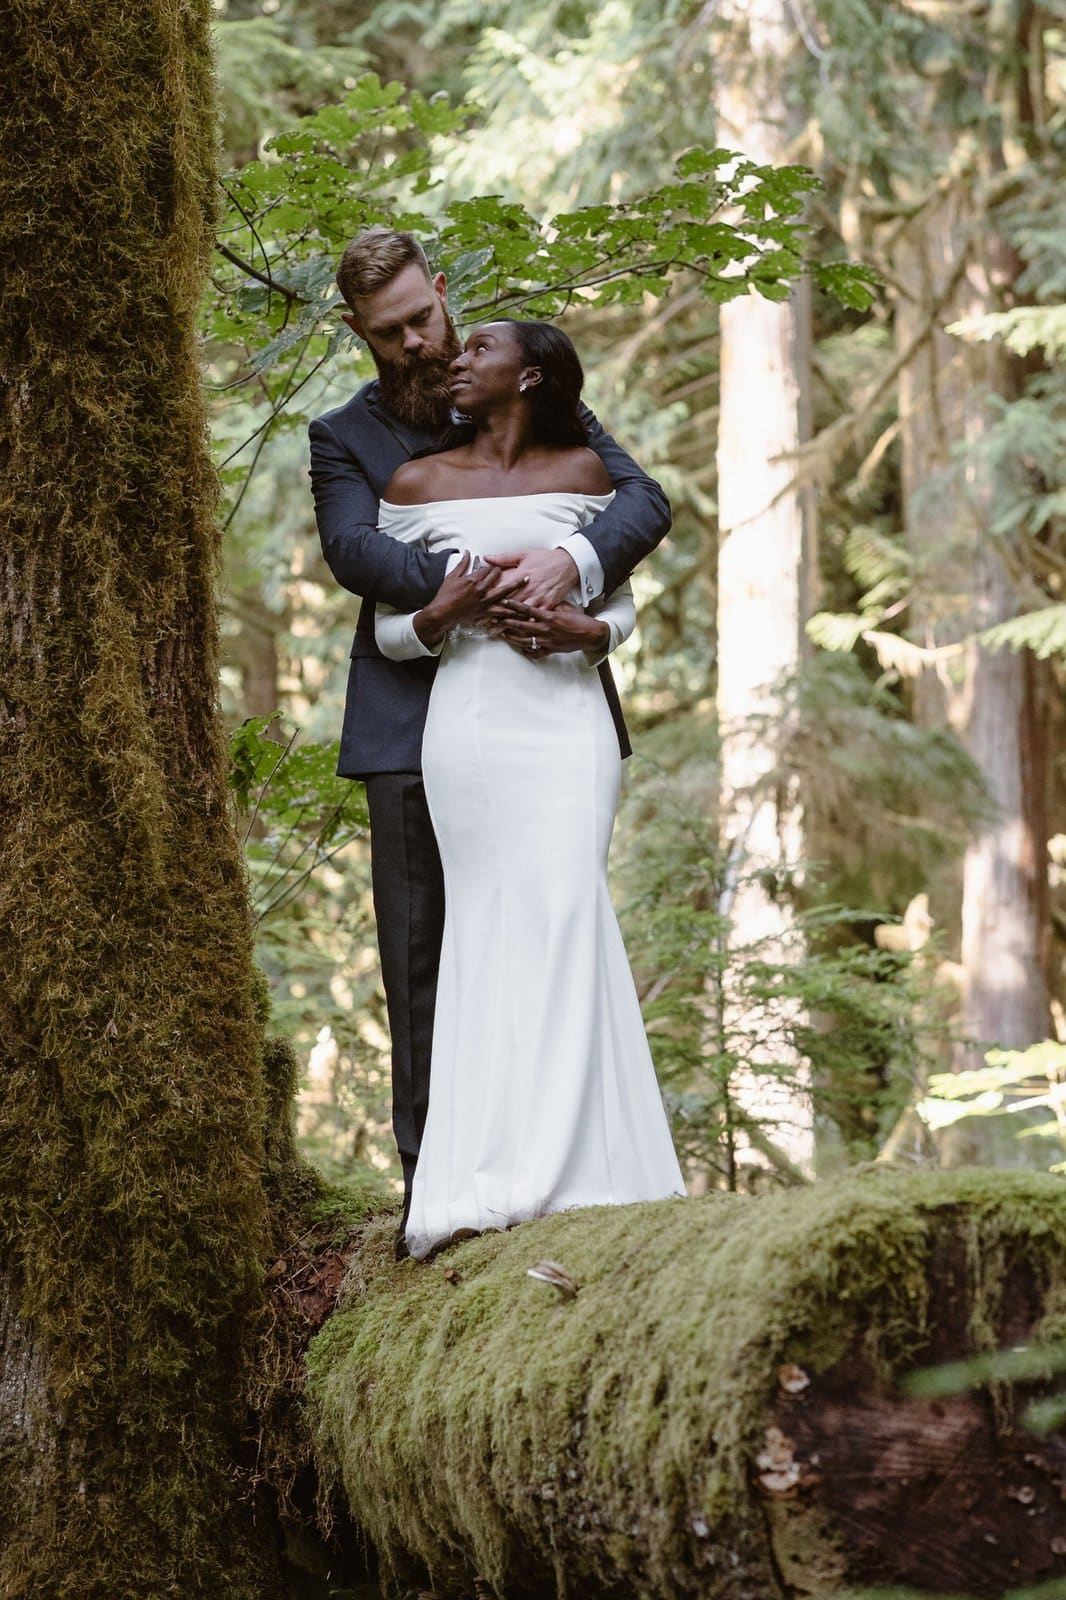 Bride and groom photography at Olympic National Park.